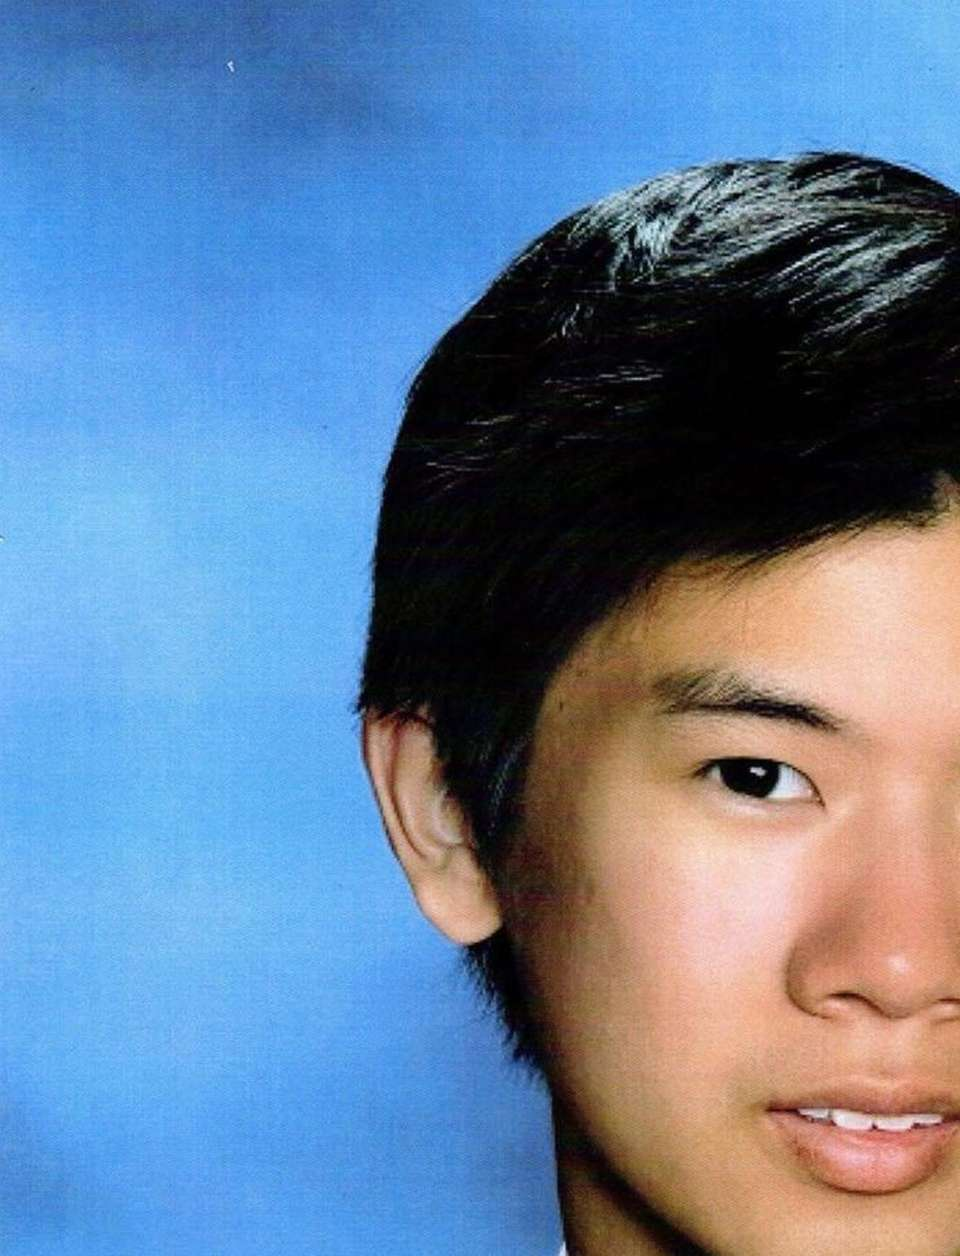 VALLEY STREAM SOUTH HIGH SCHOOL, WESLEY TSAI Hometown: